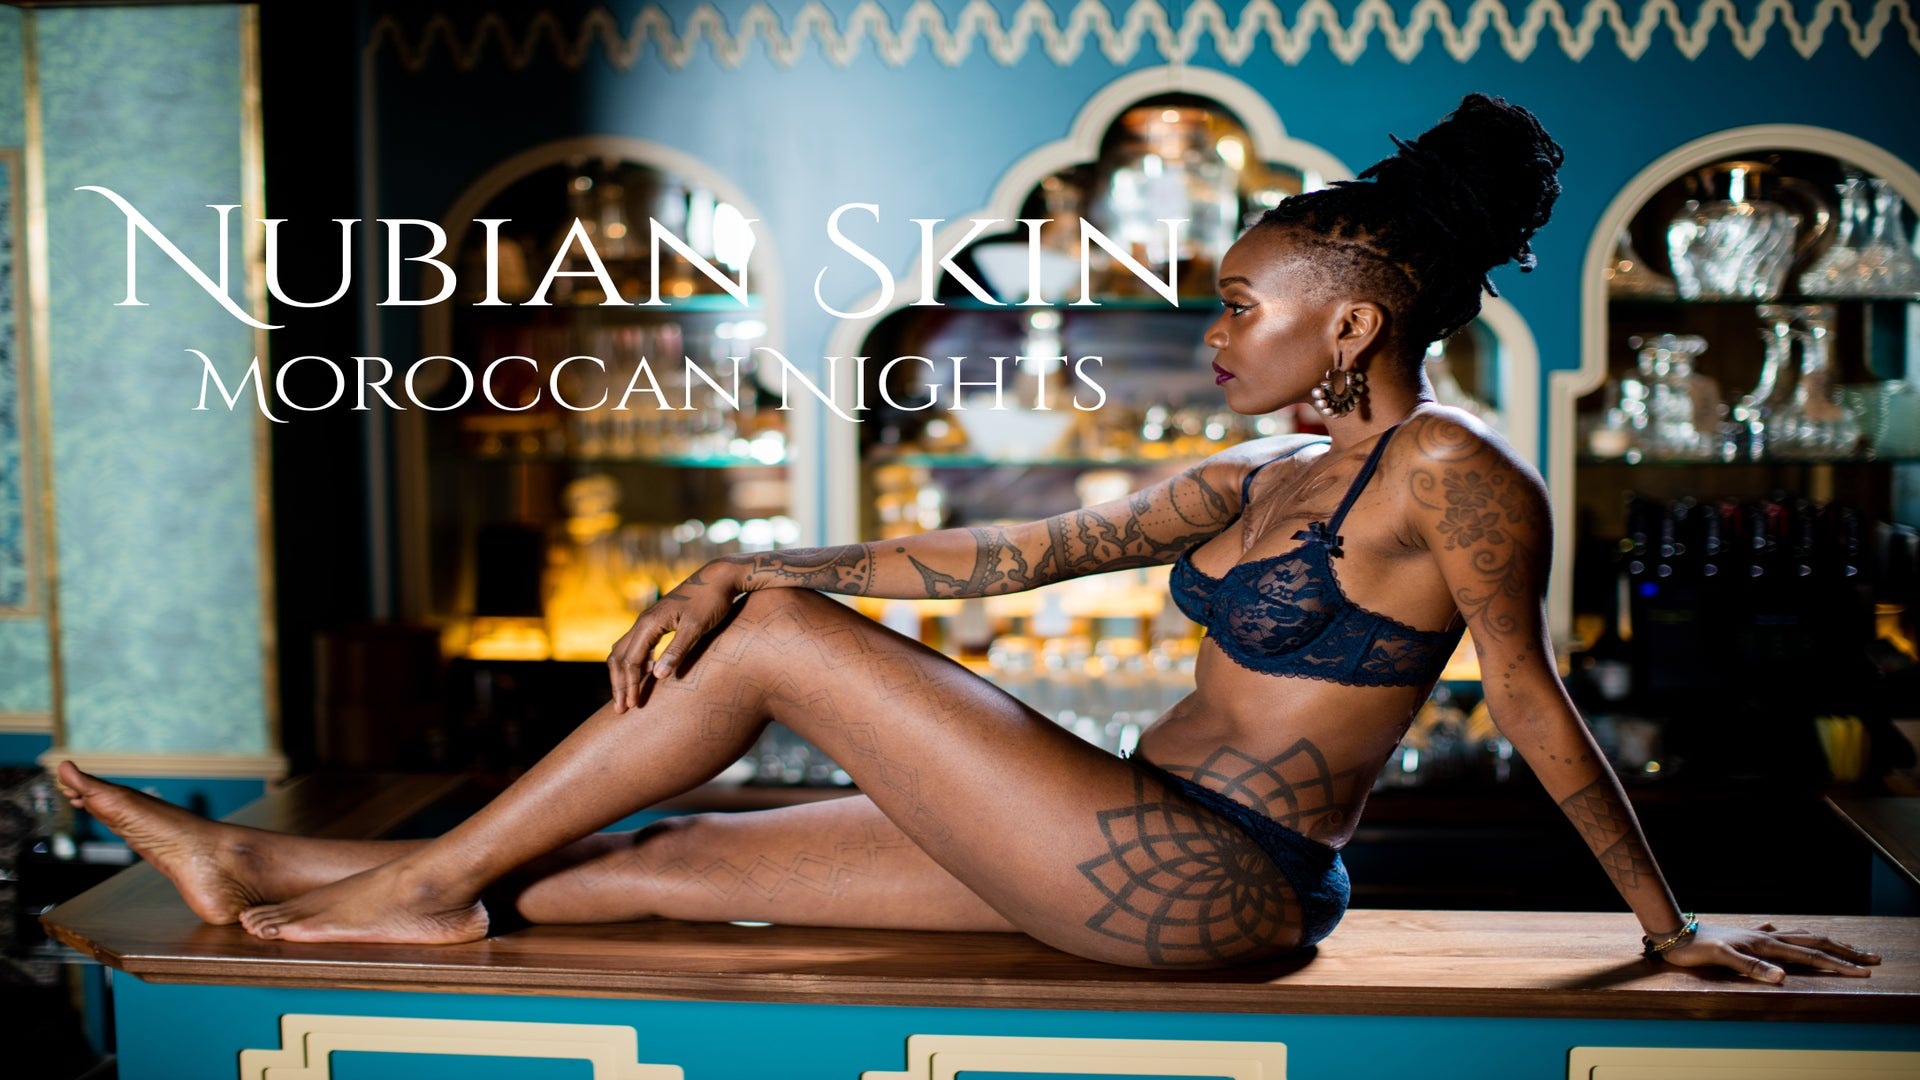 Nubian Skin Debuts 'Moroccan Nights' Lingerie Collection